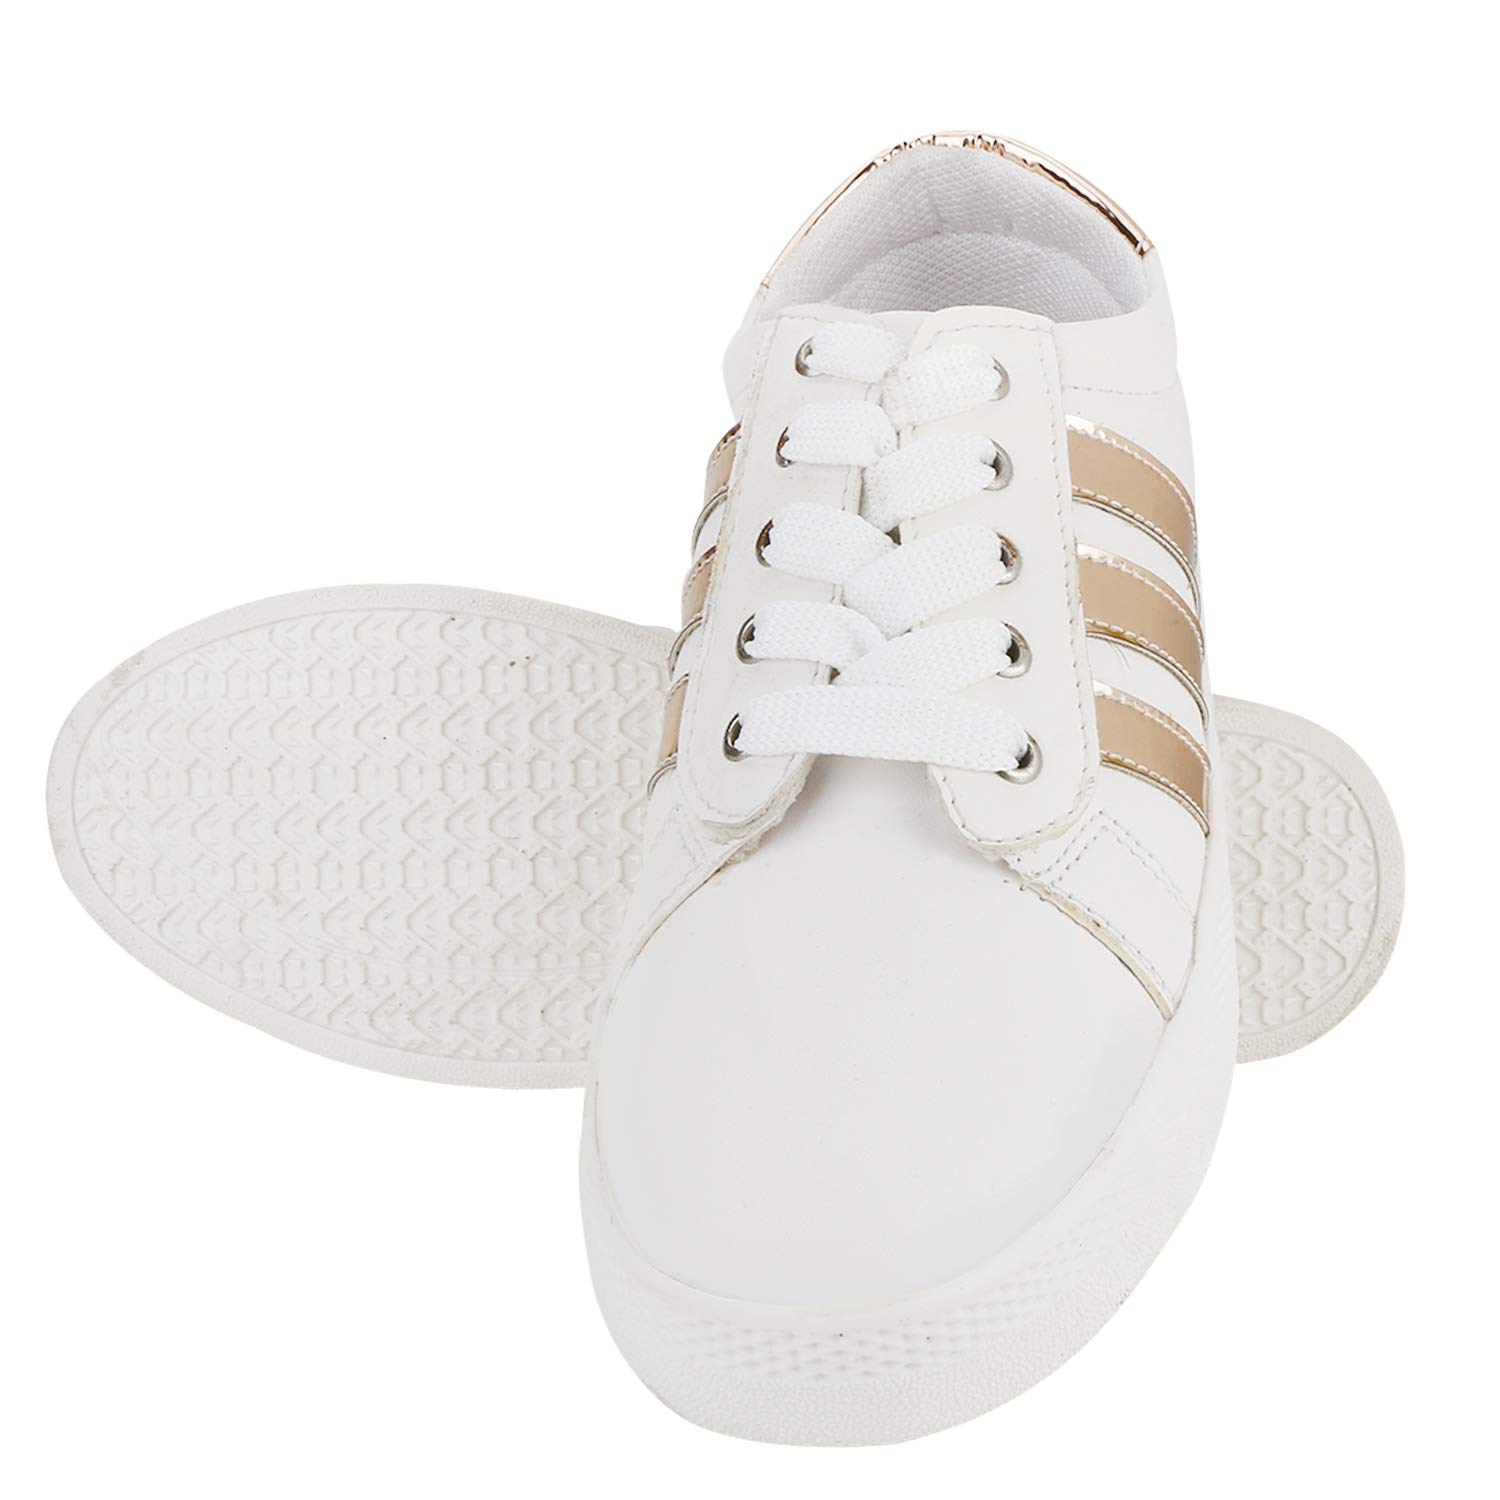 Buy Quarks PU Casual Lace up Shoes with